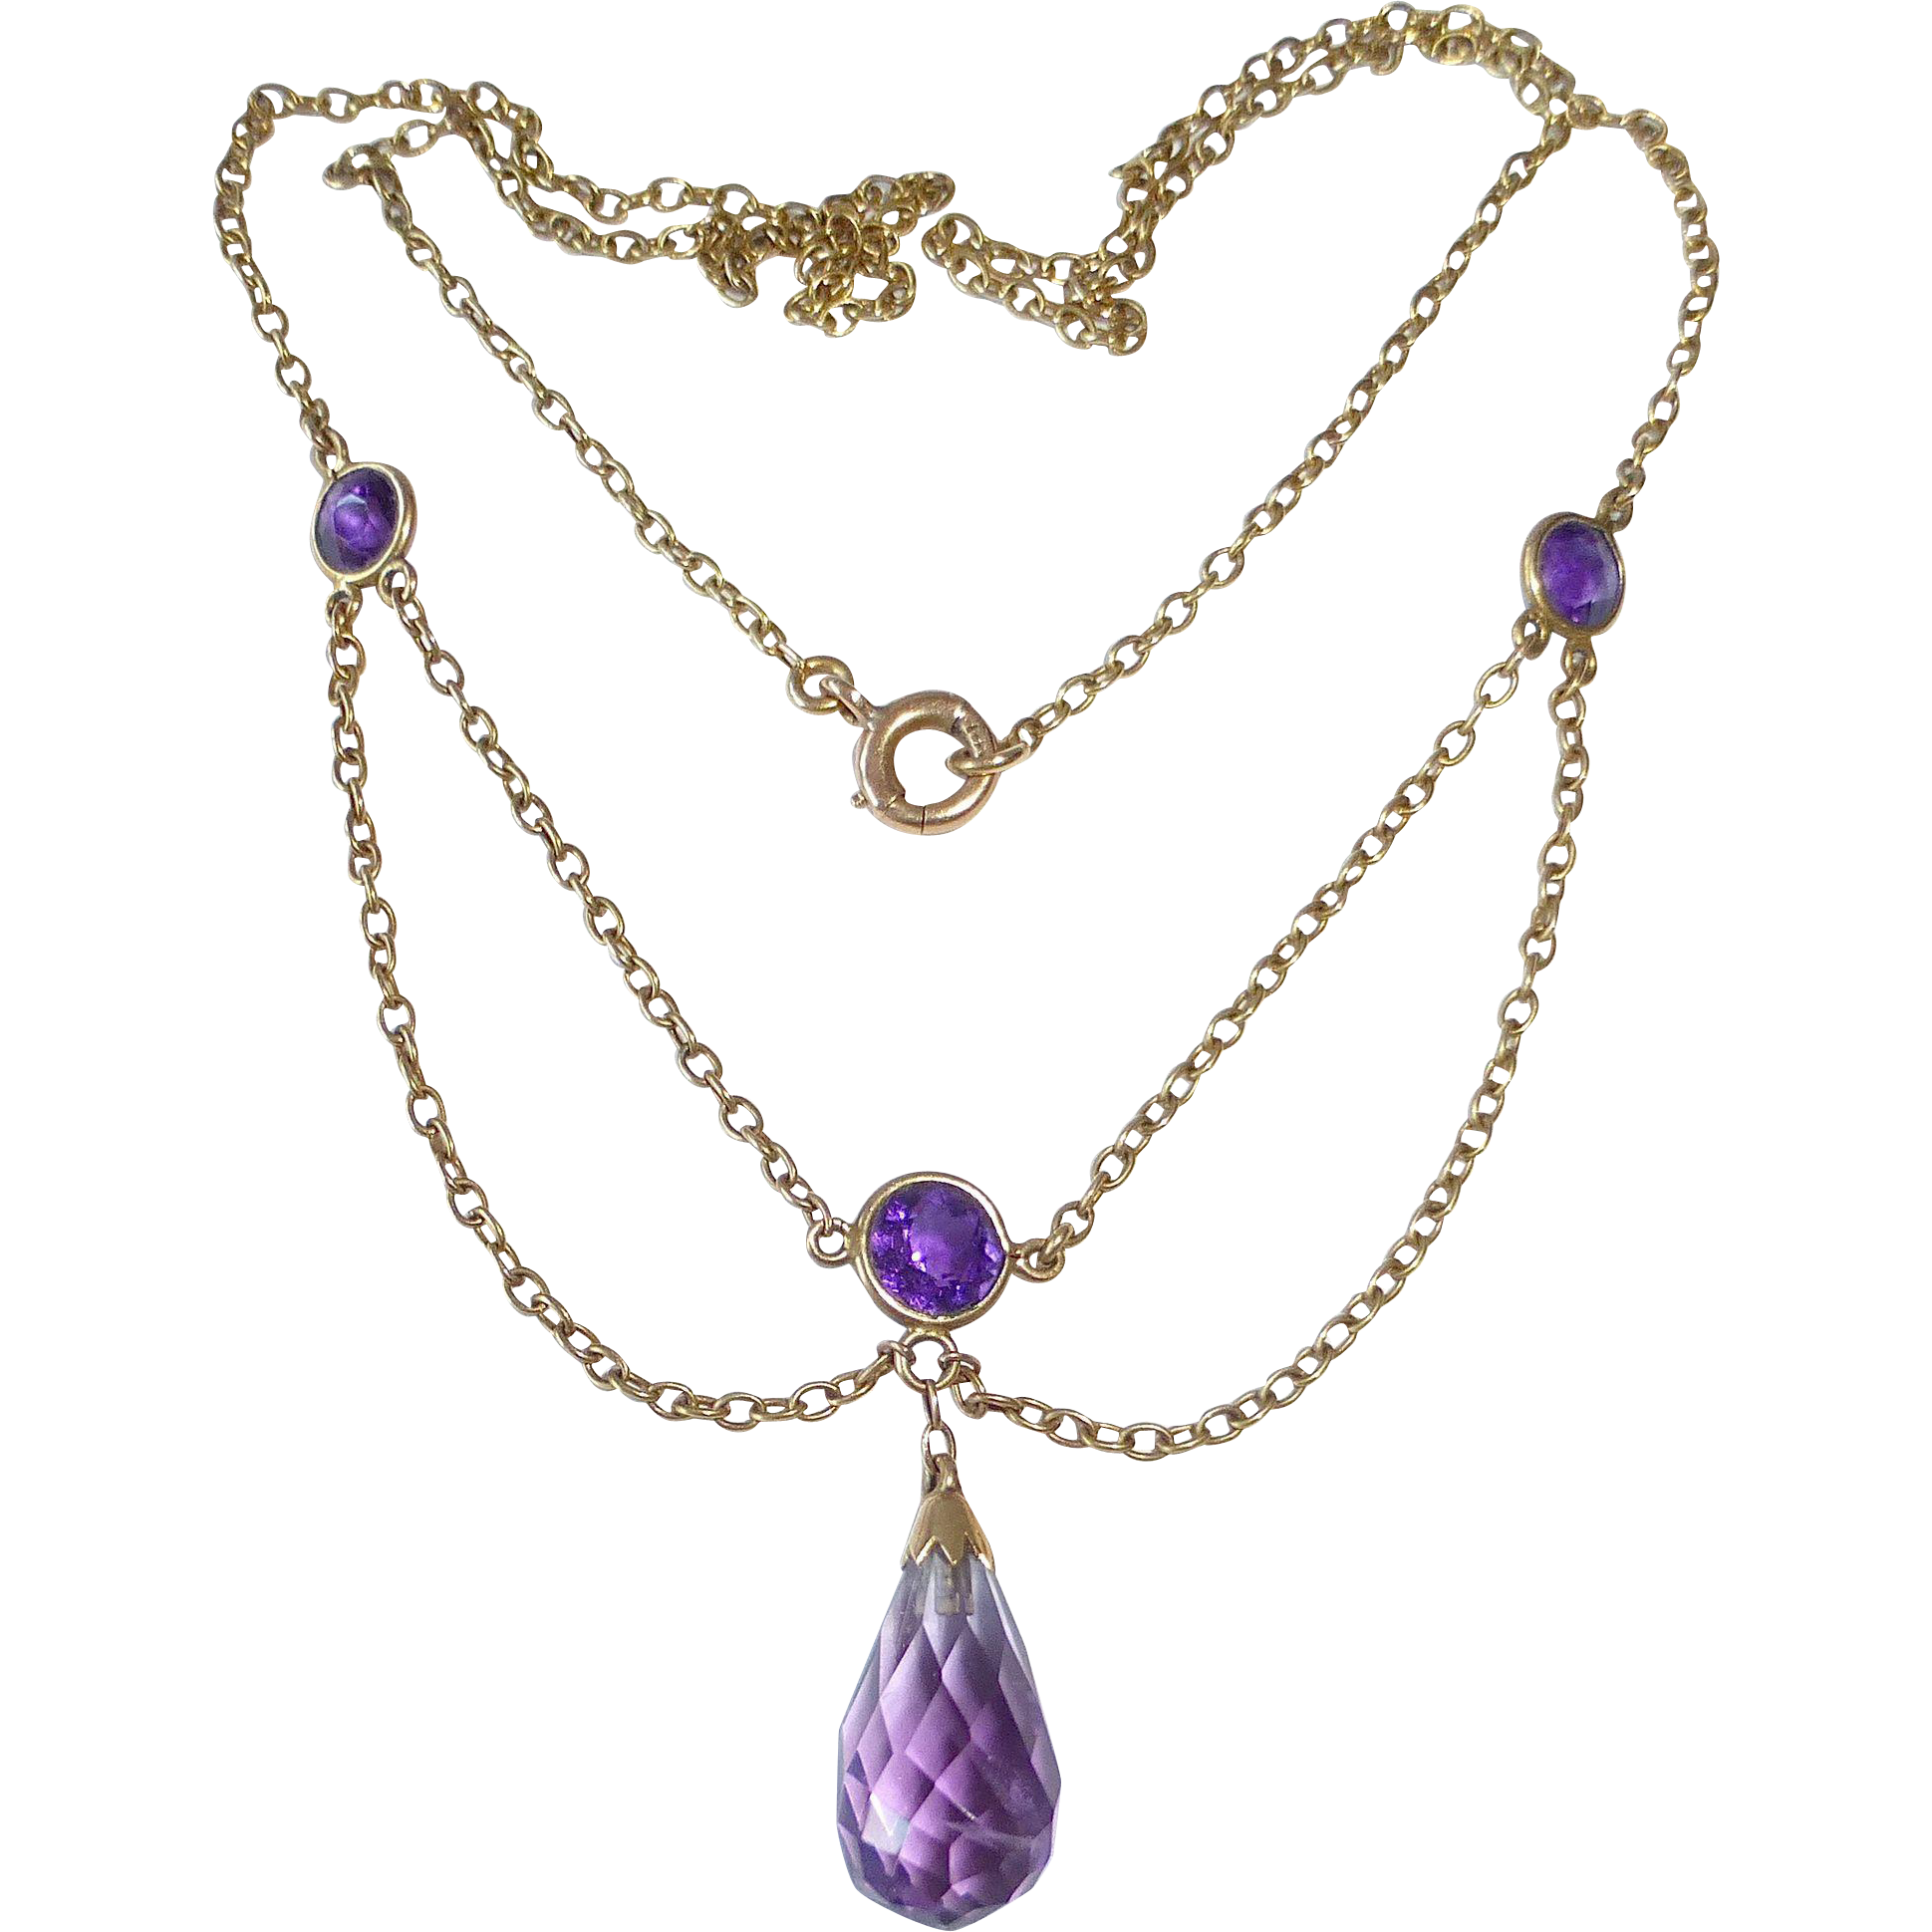 14k Victorian Antique Amethyst Festoon Necklace